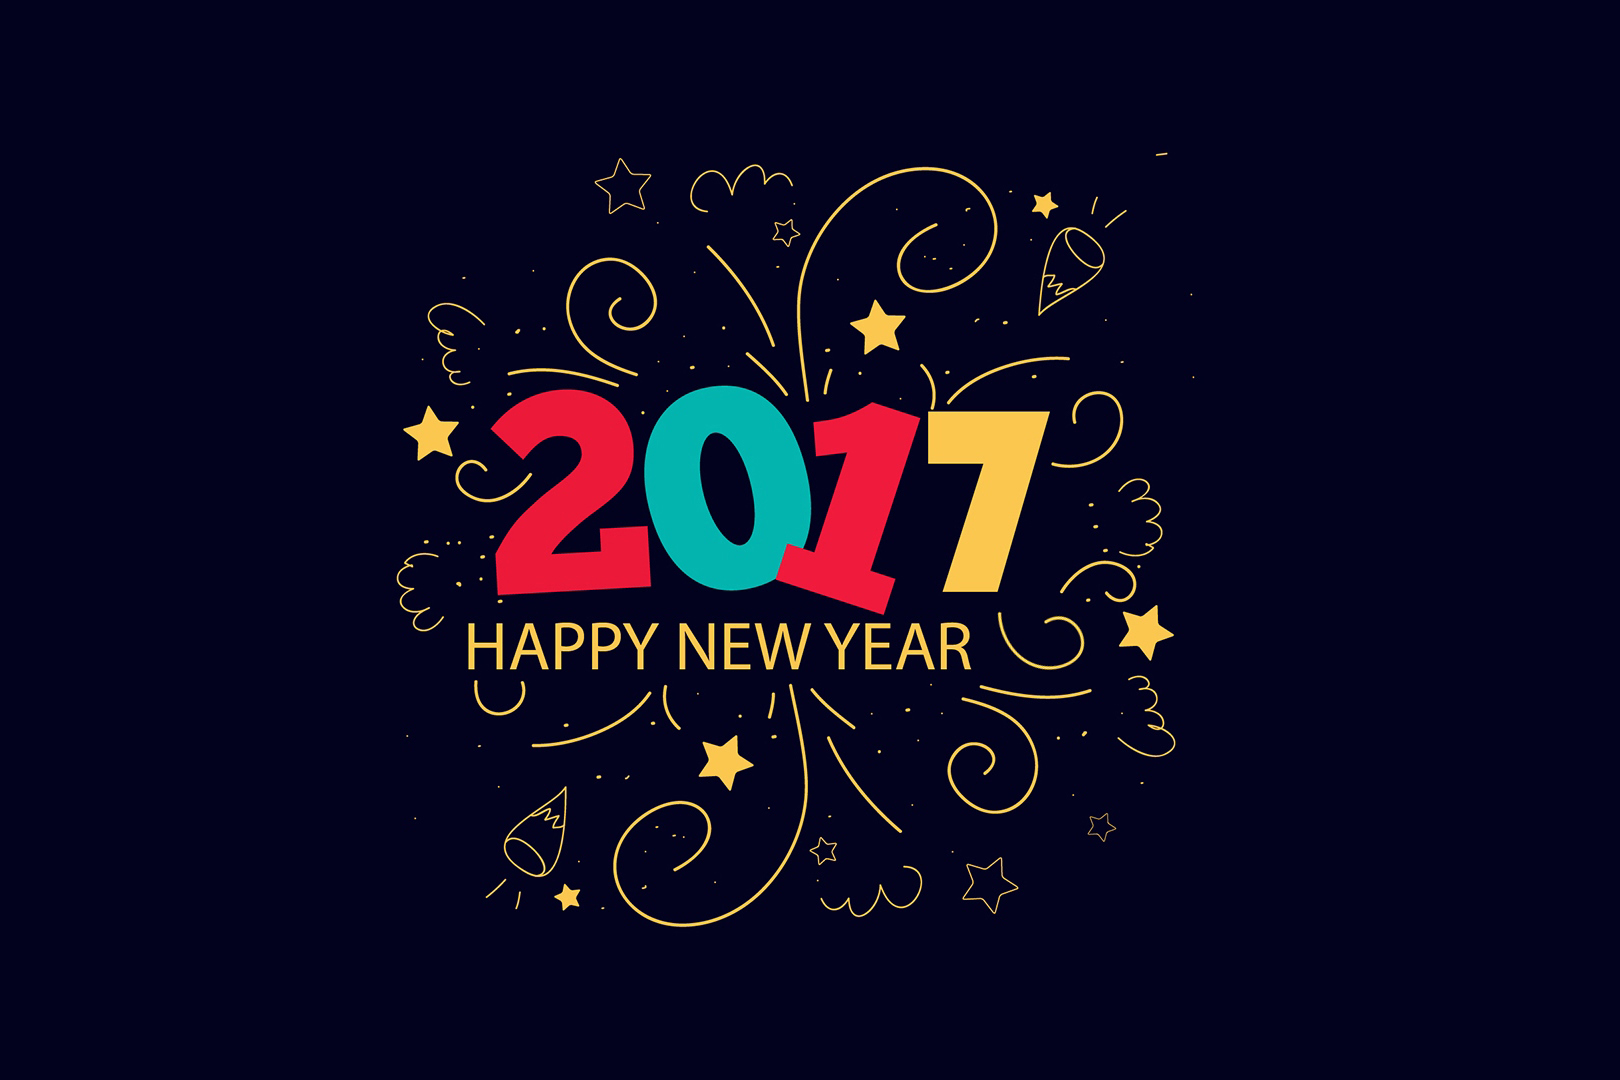 happy-new-year-pictures-20177-2.jpg